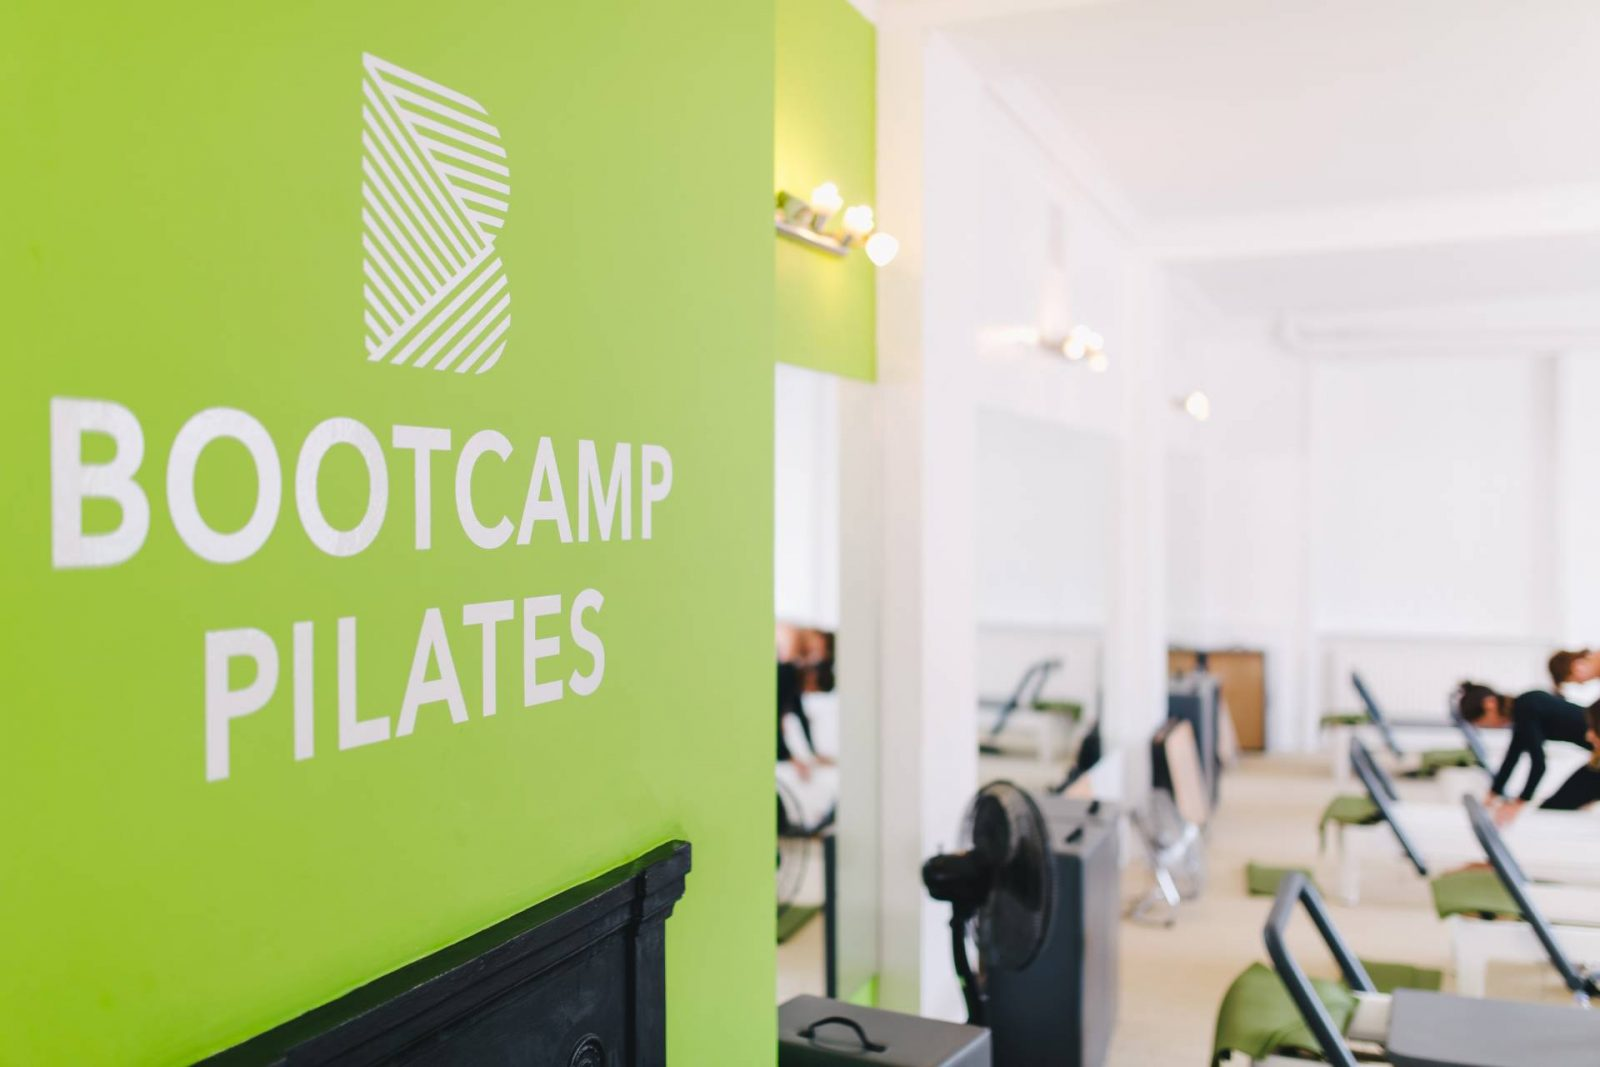 bootcamp-pilates-4